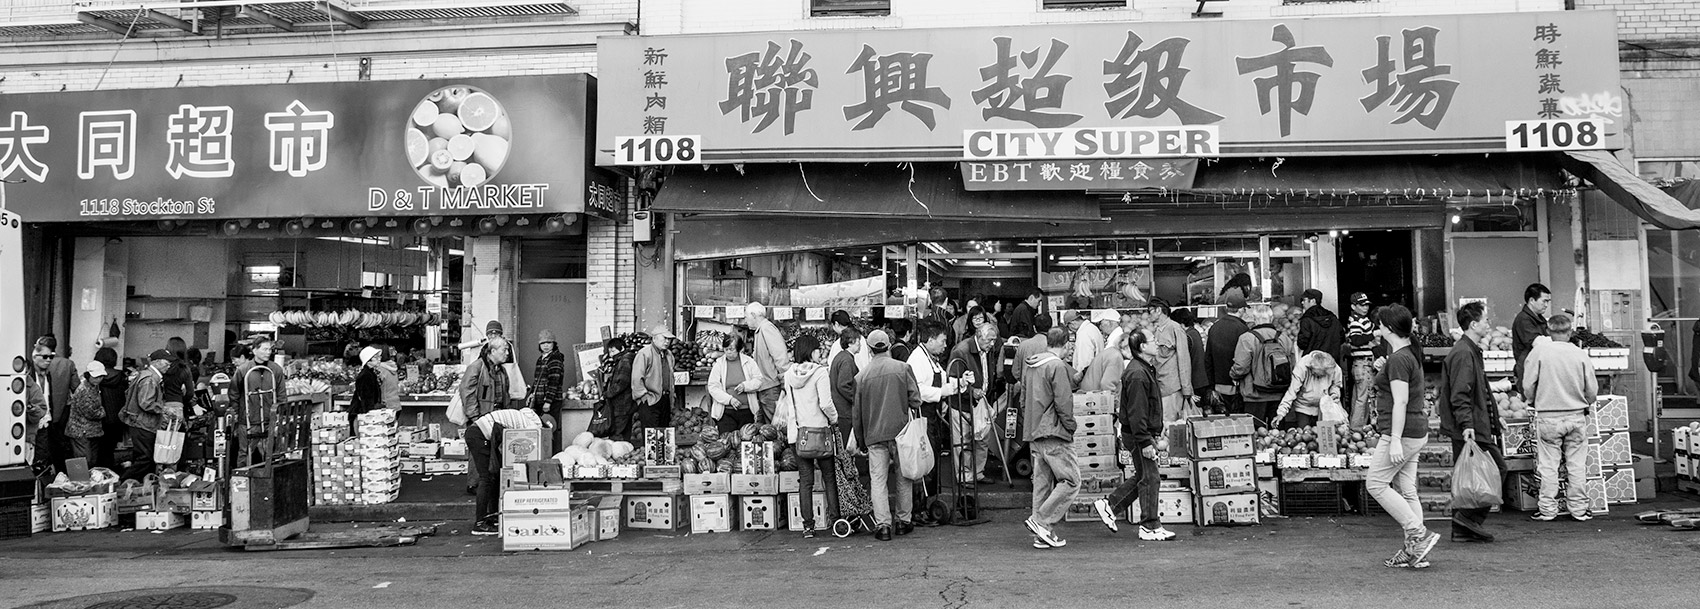 A crowd of people going in and out of City Super and D & T Market. The signs are written in Chinese and in English. Boxes line the store front.